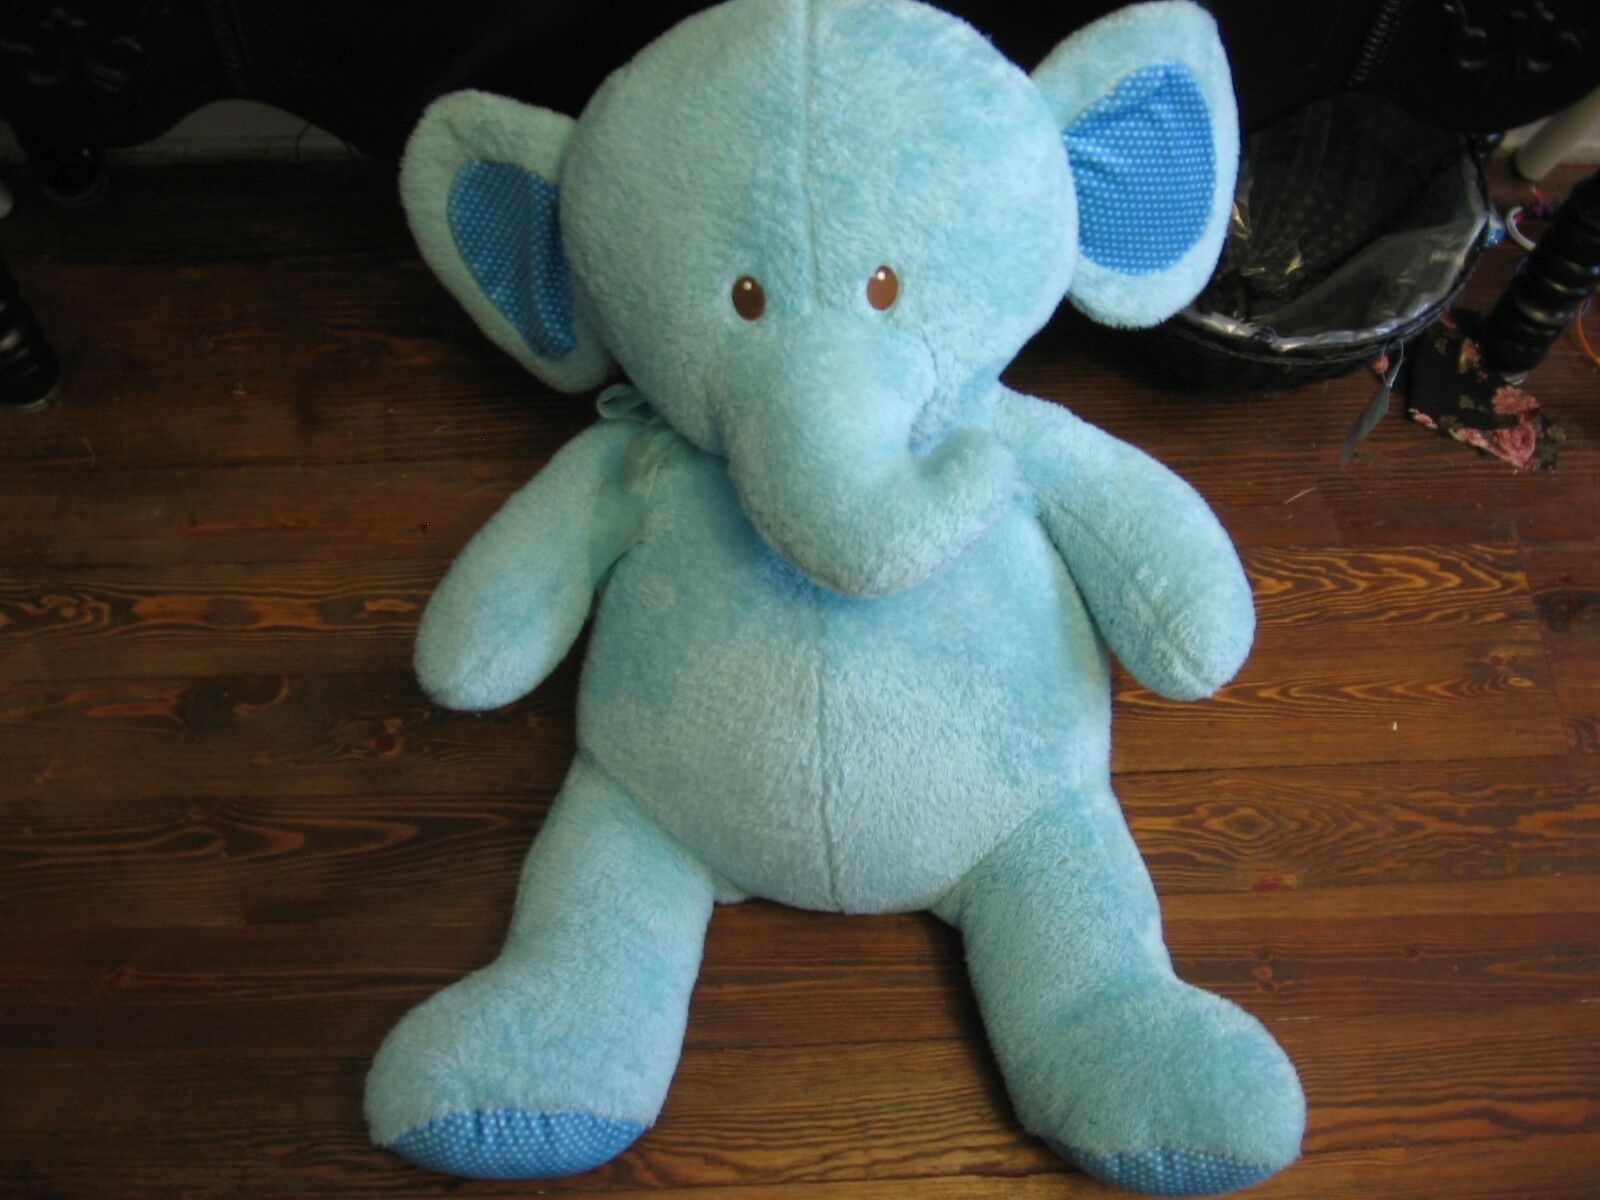 32  plush blu Elephant doll, good condition